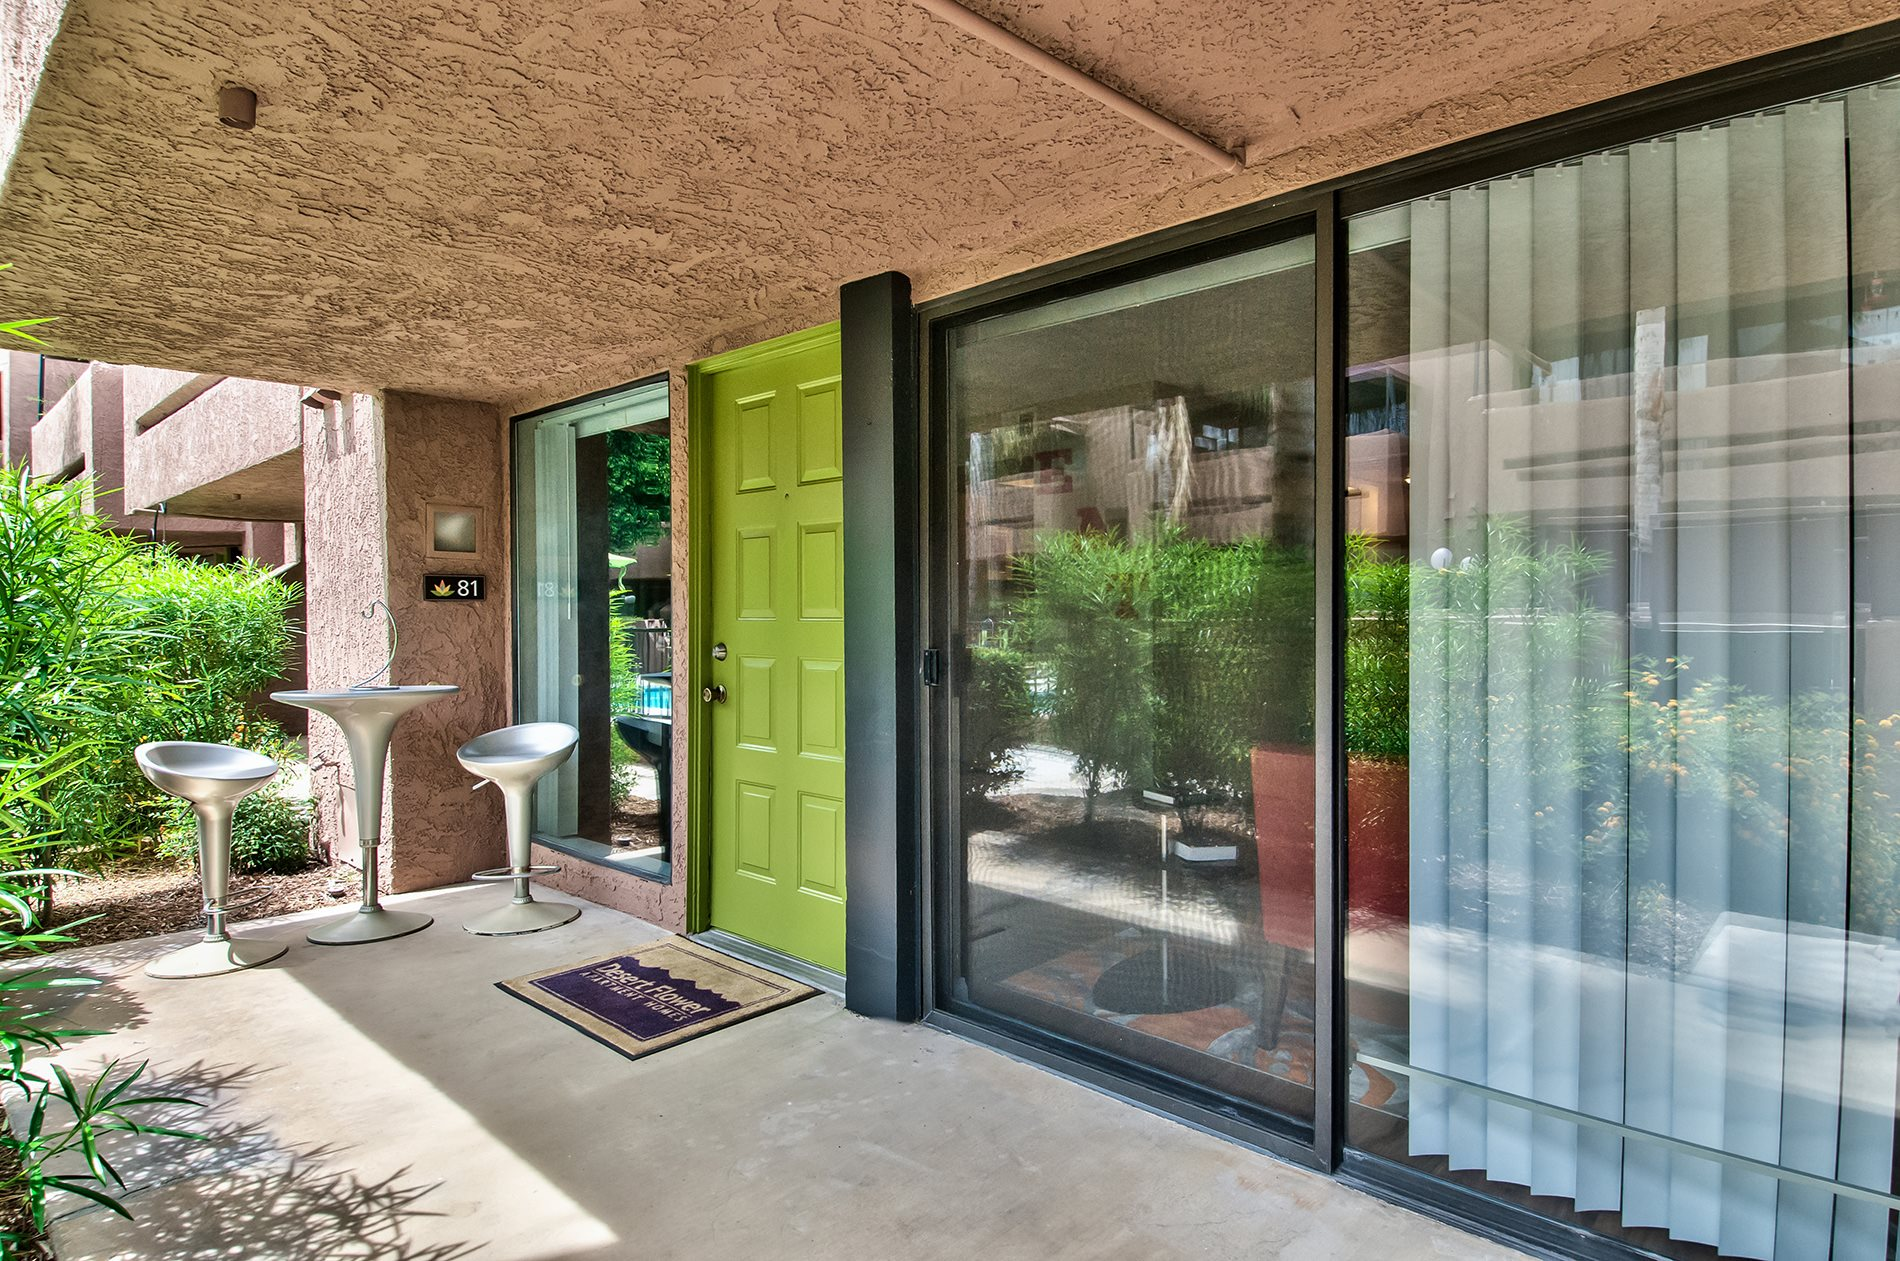 Photos and video of desert flower apartment homes in palm springs ca palm springs photogallery 1 mightylinksfo